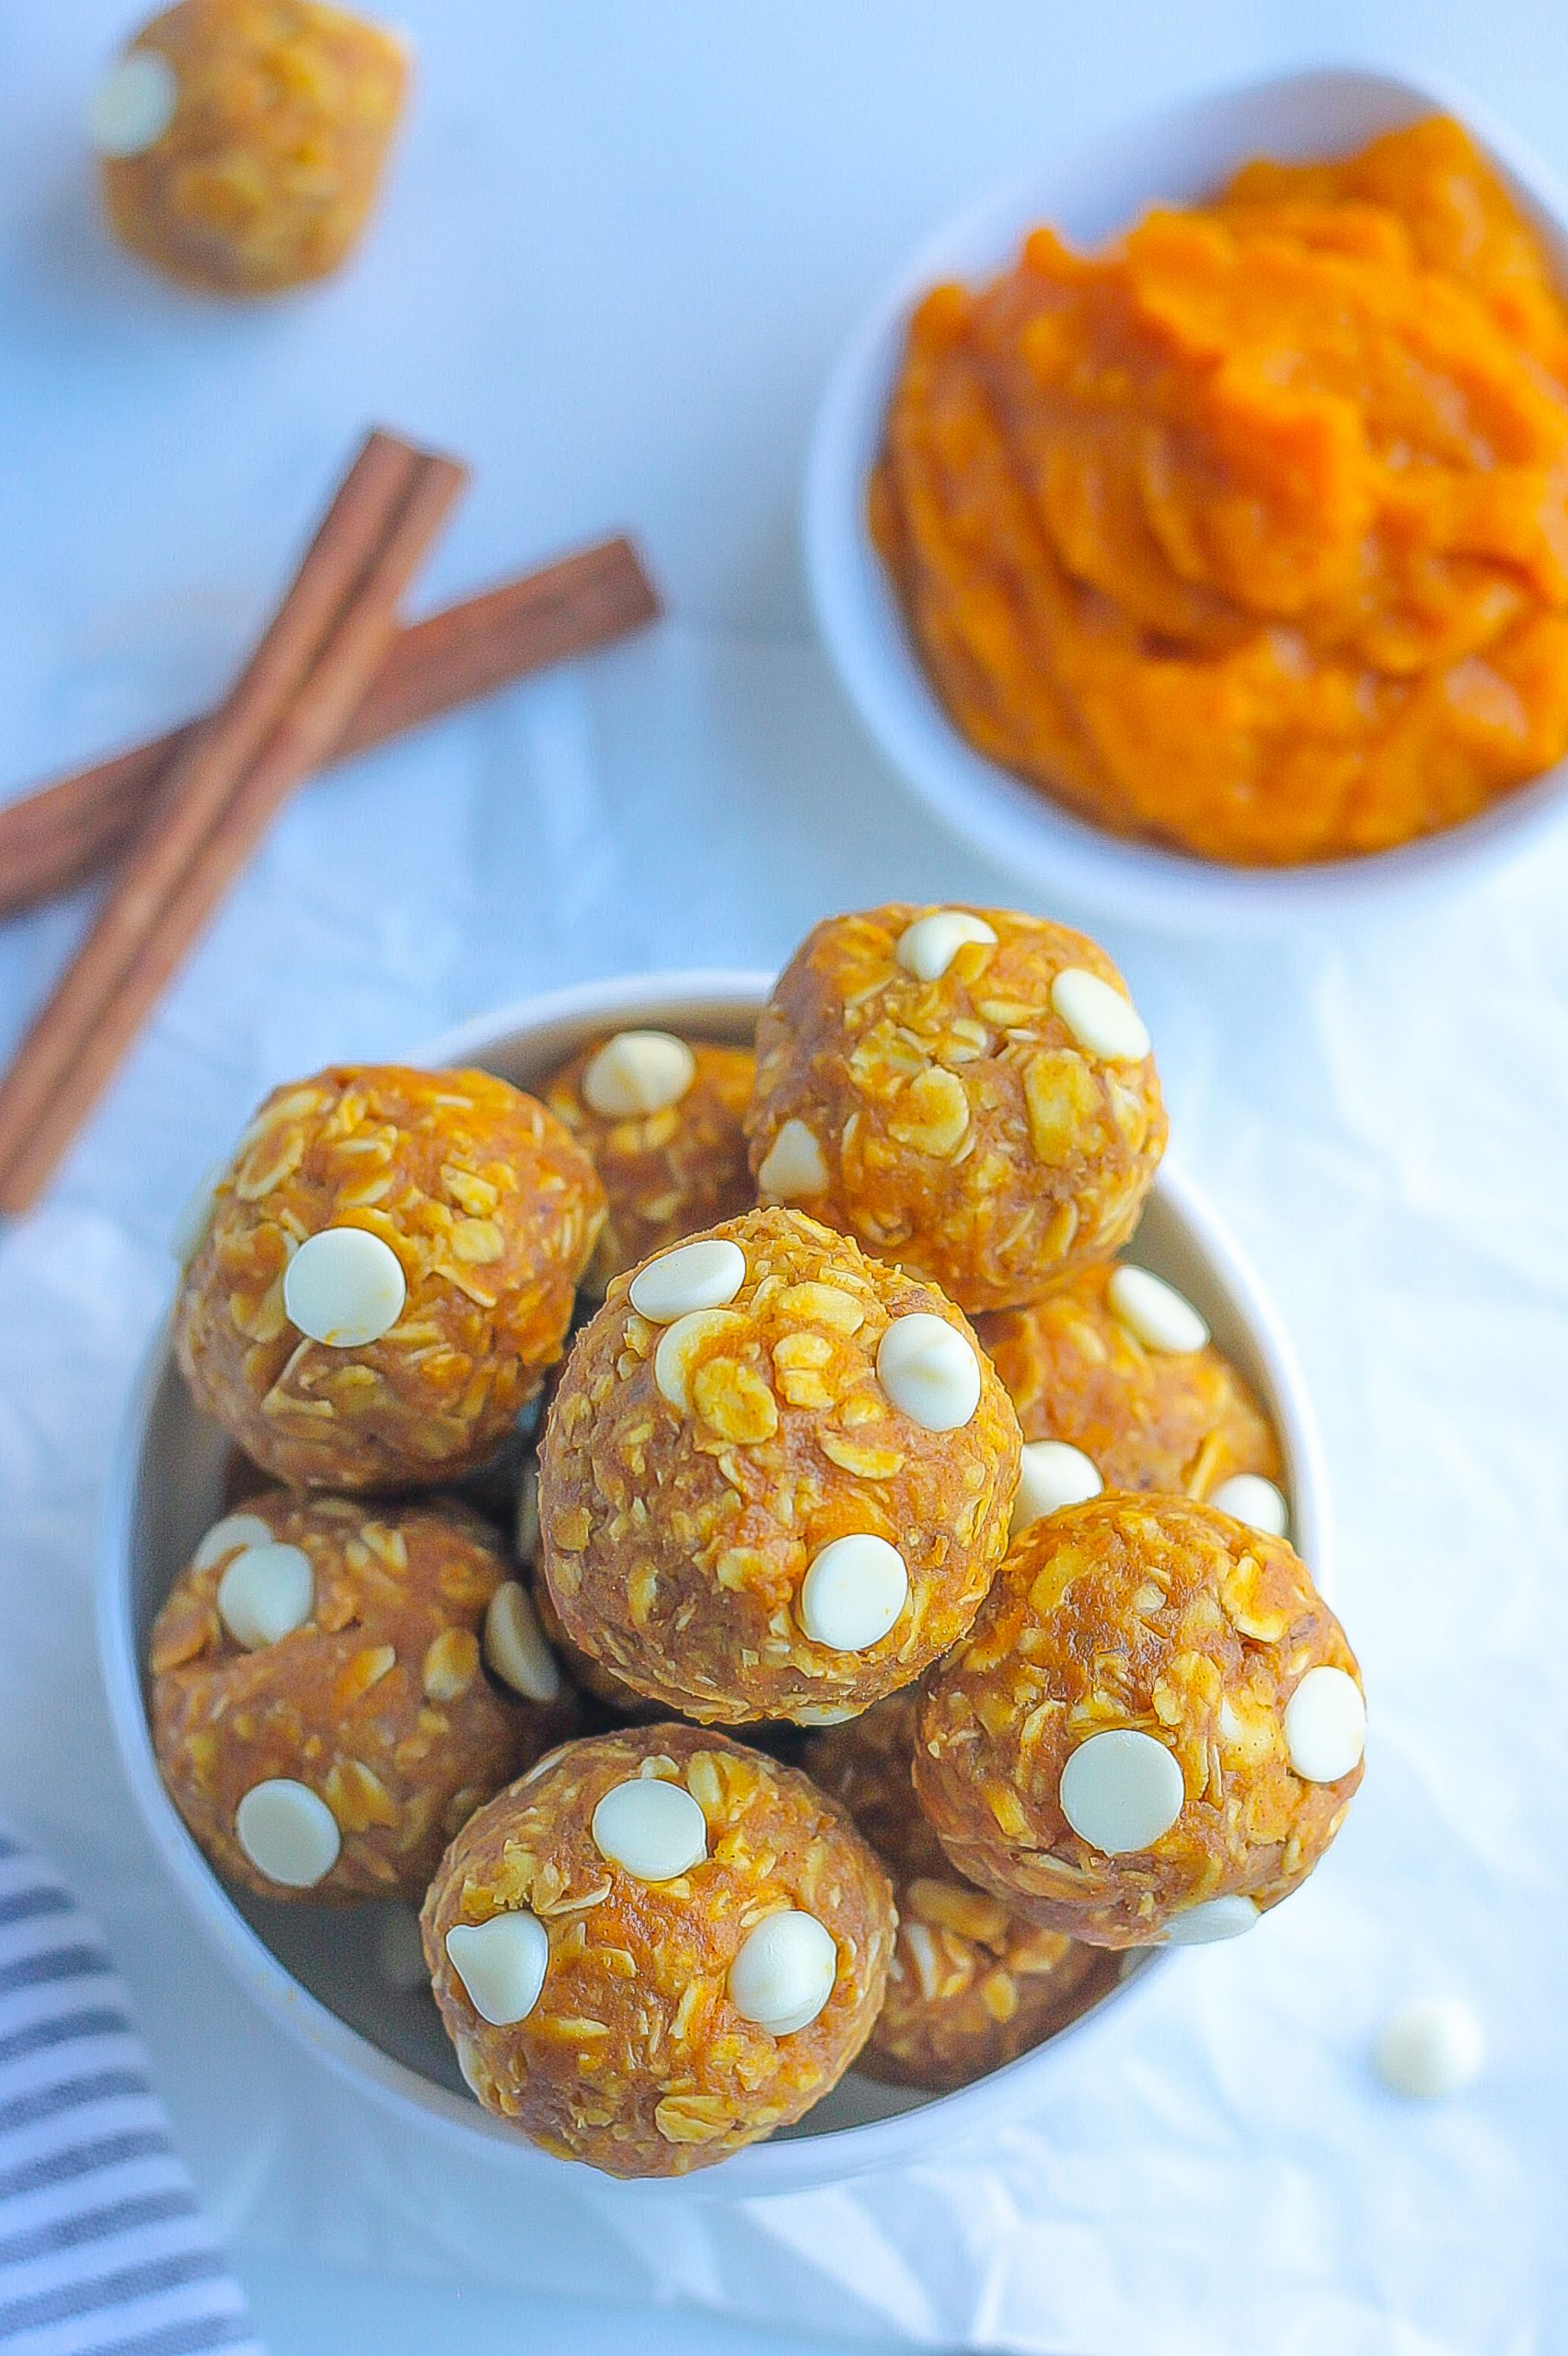 close image of bowl of pumpkin energy bites with white chocolate chips and cinnamon sticks